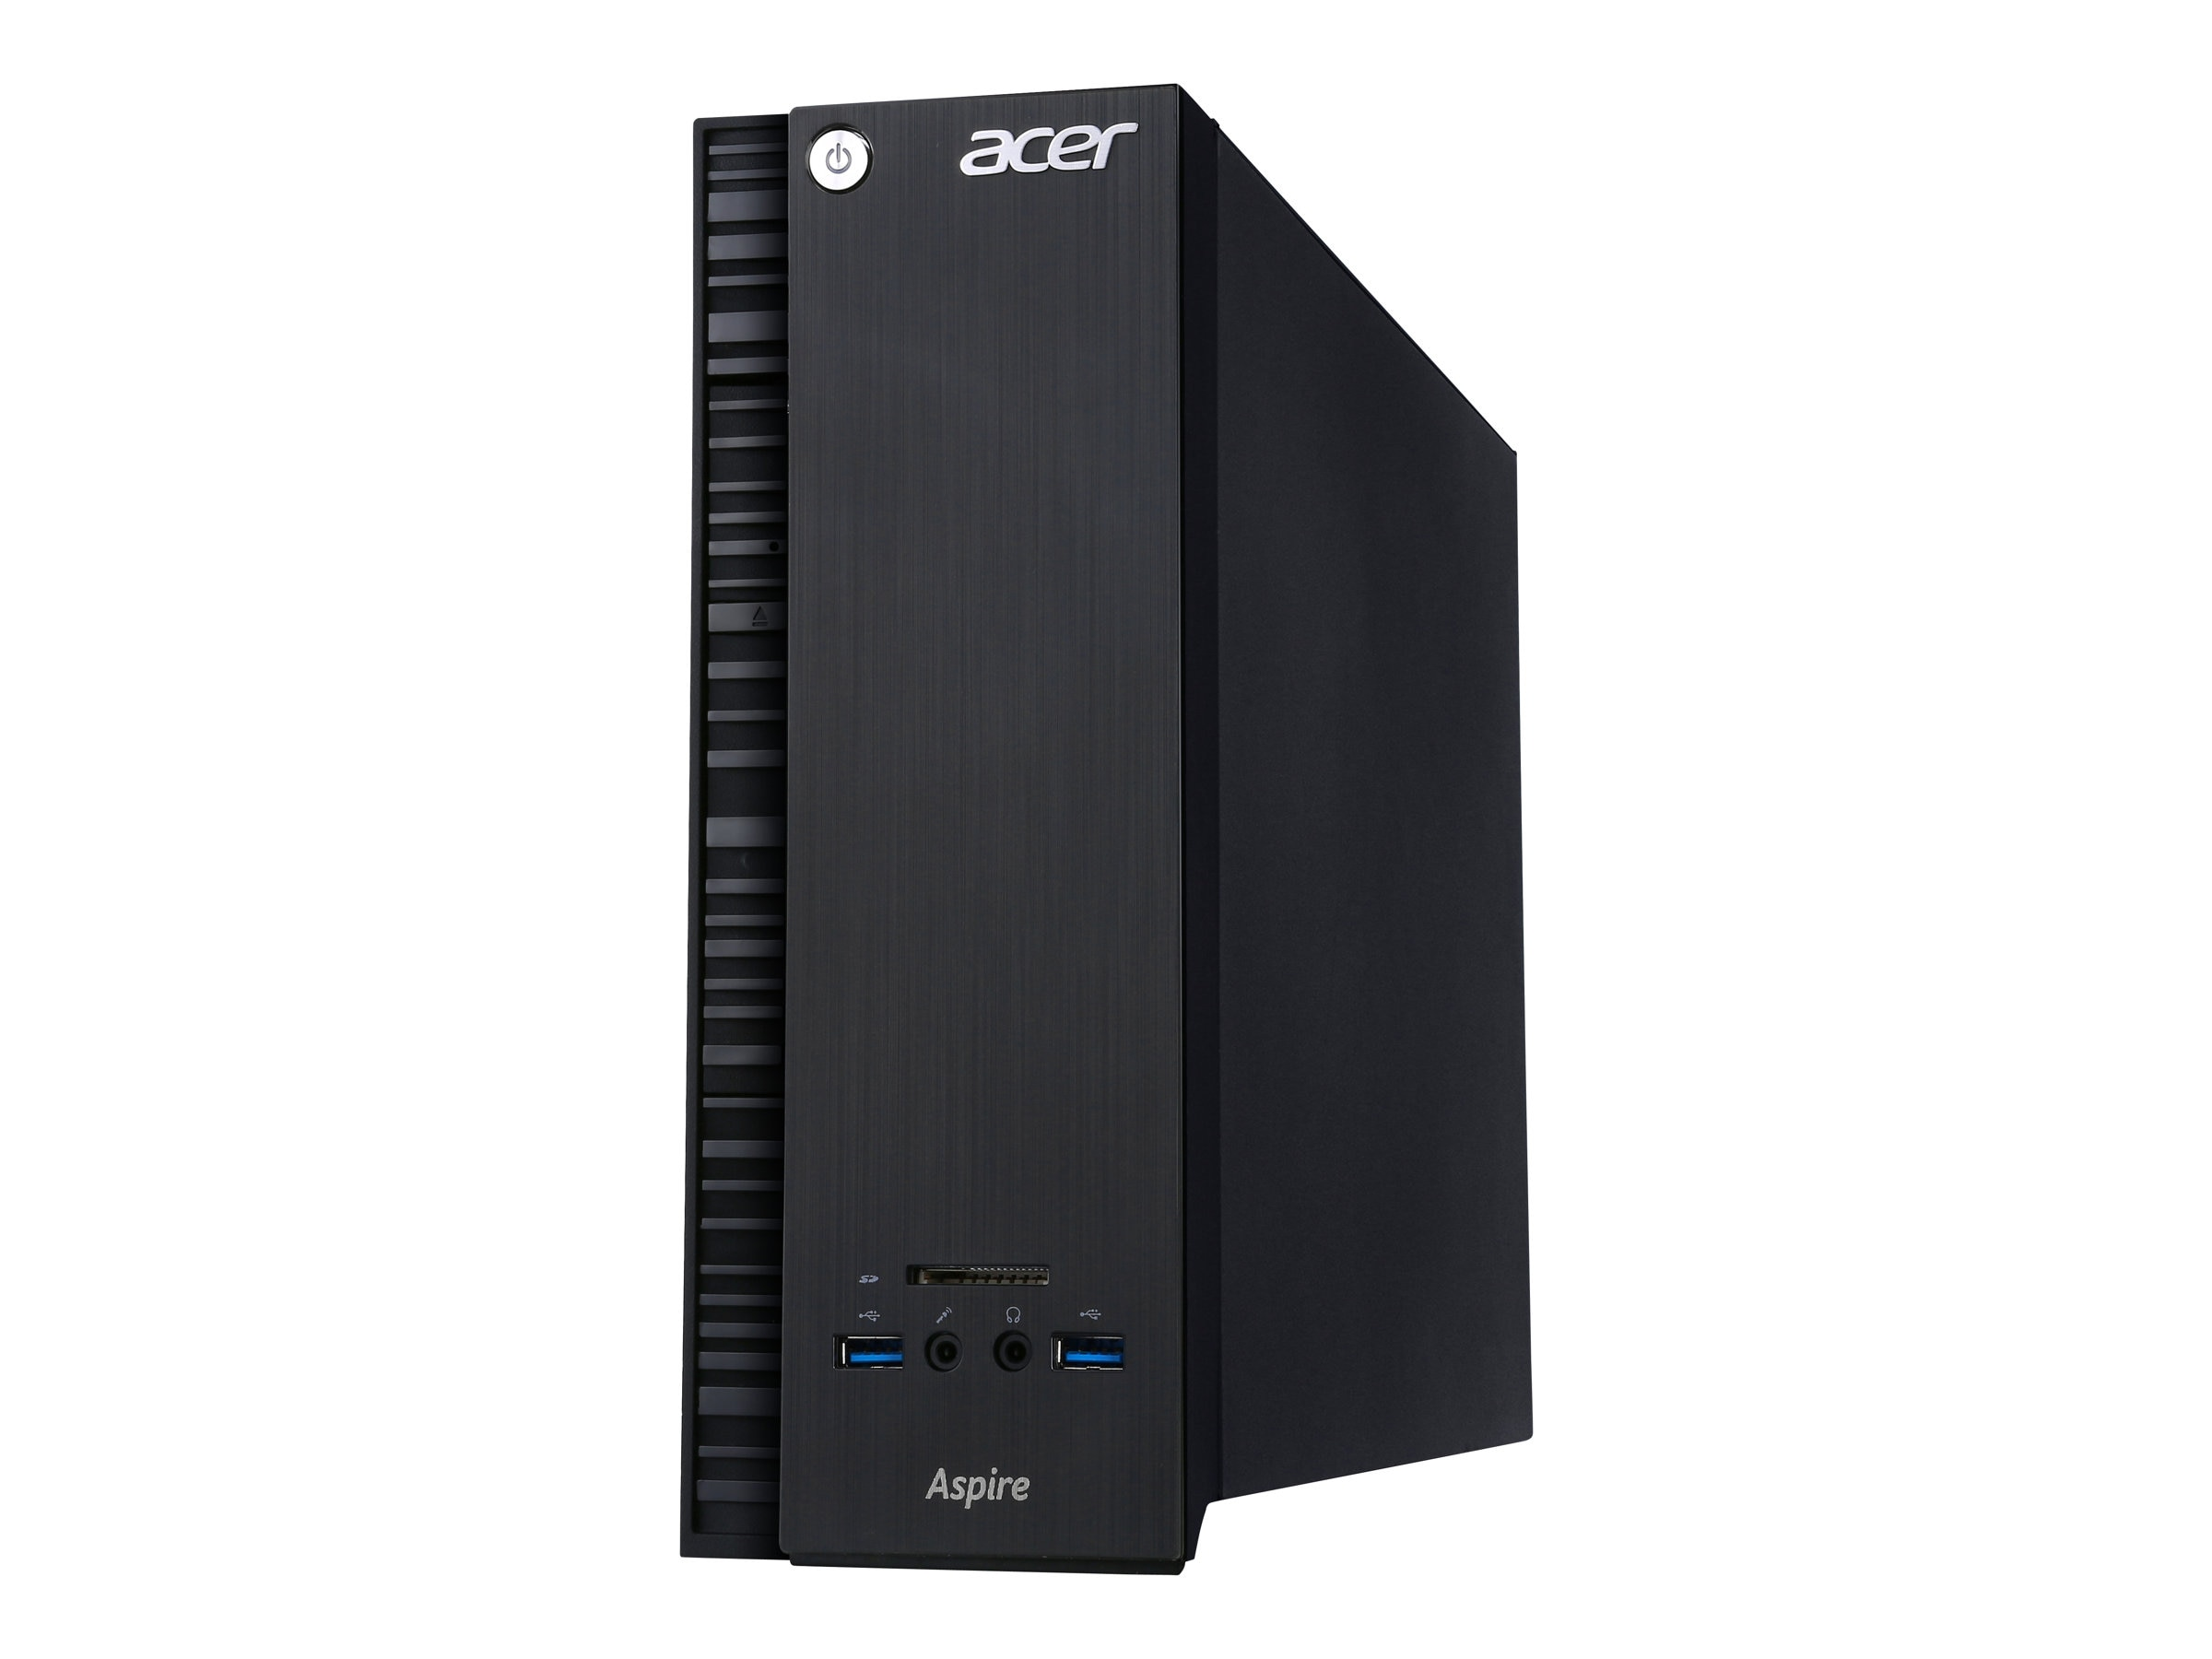 Acer Aspire XC-705 3.6GHz Core i3 6GB RAM 1TB hard drive